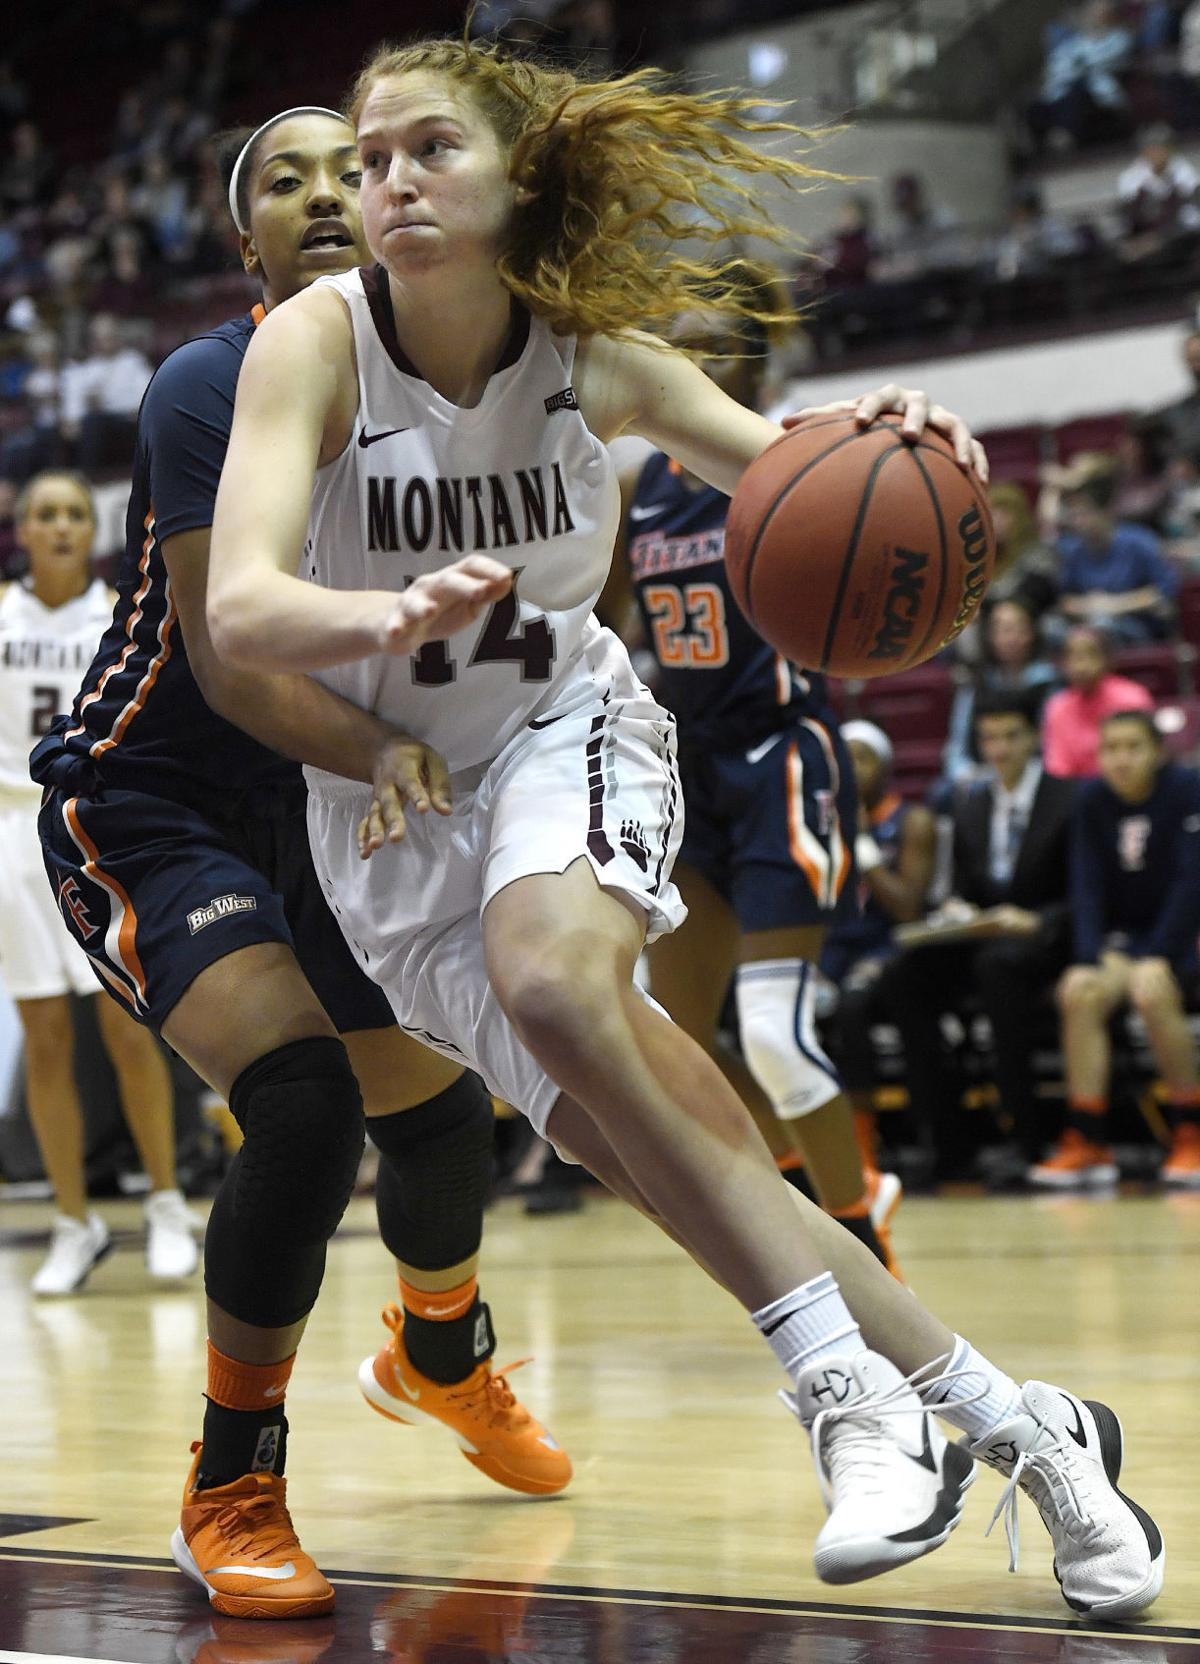 120217 lady griz vs fullerton-1-tm.jpg